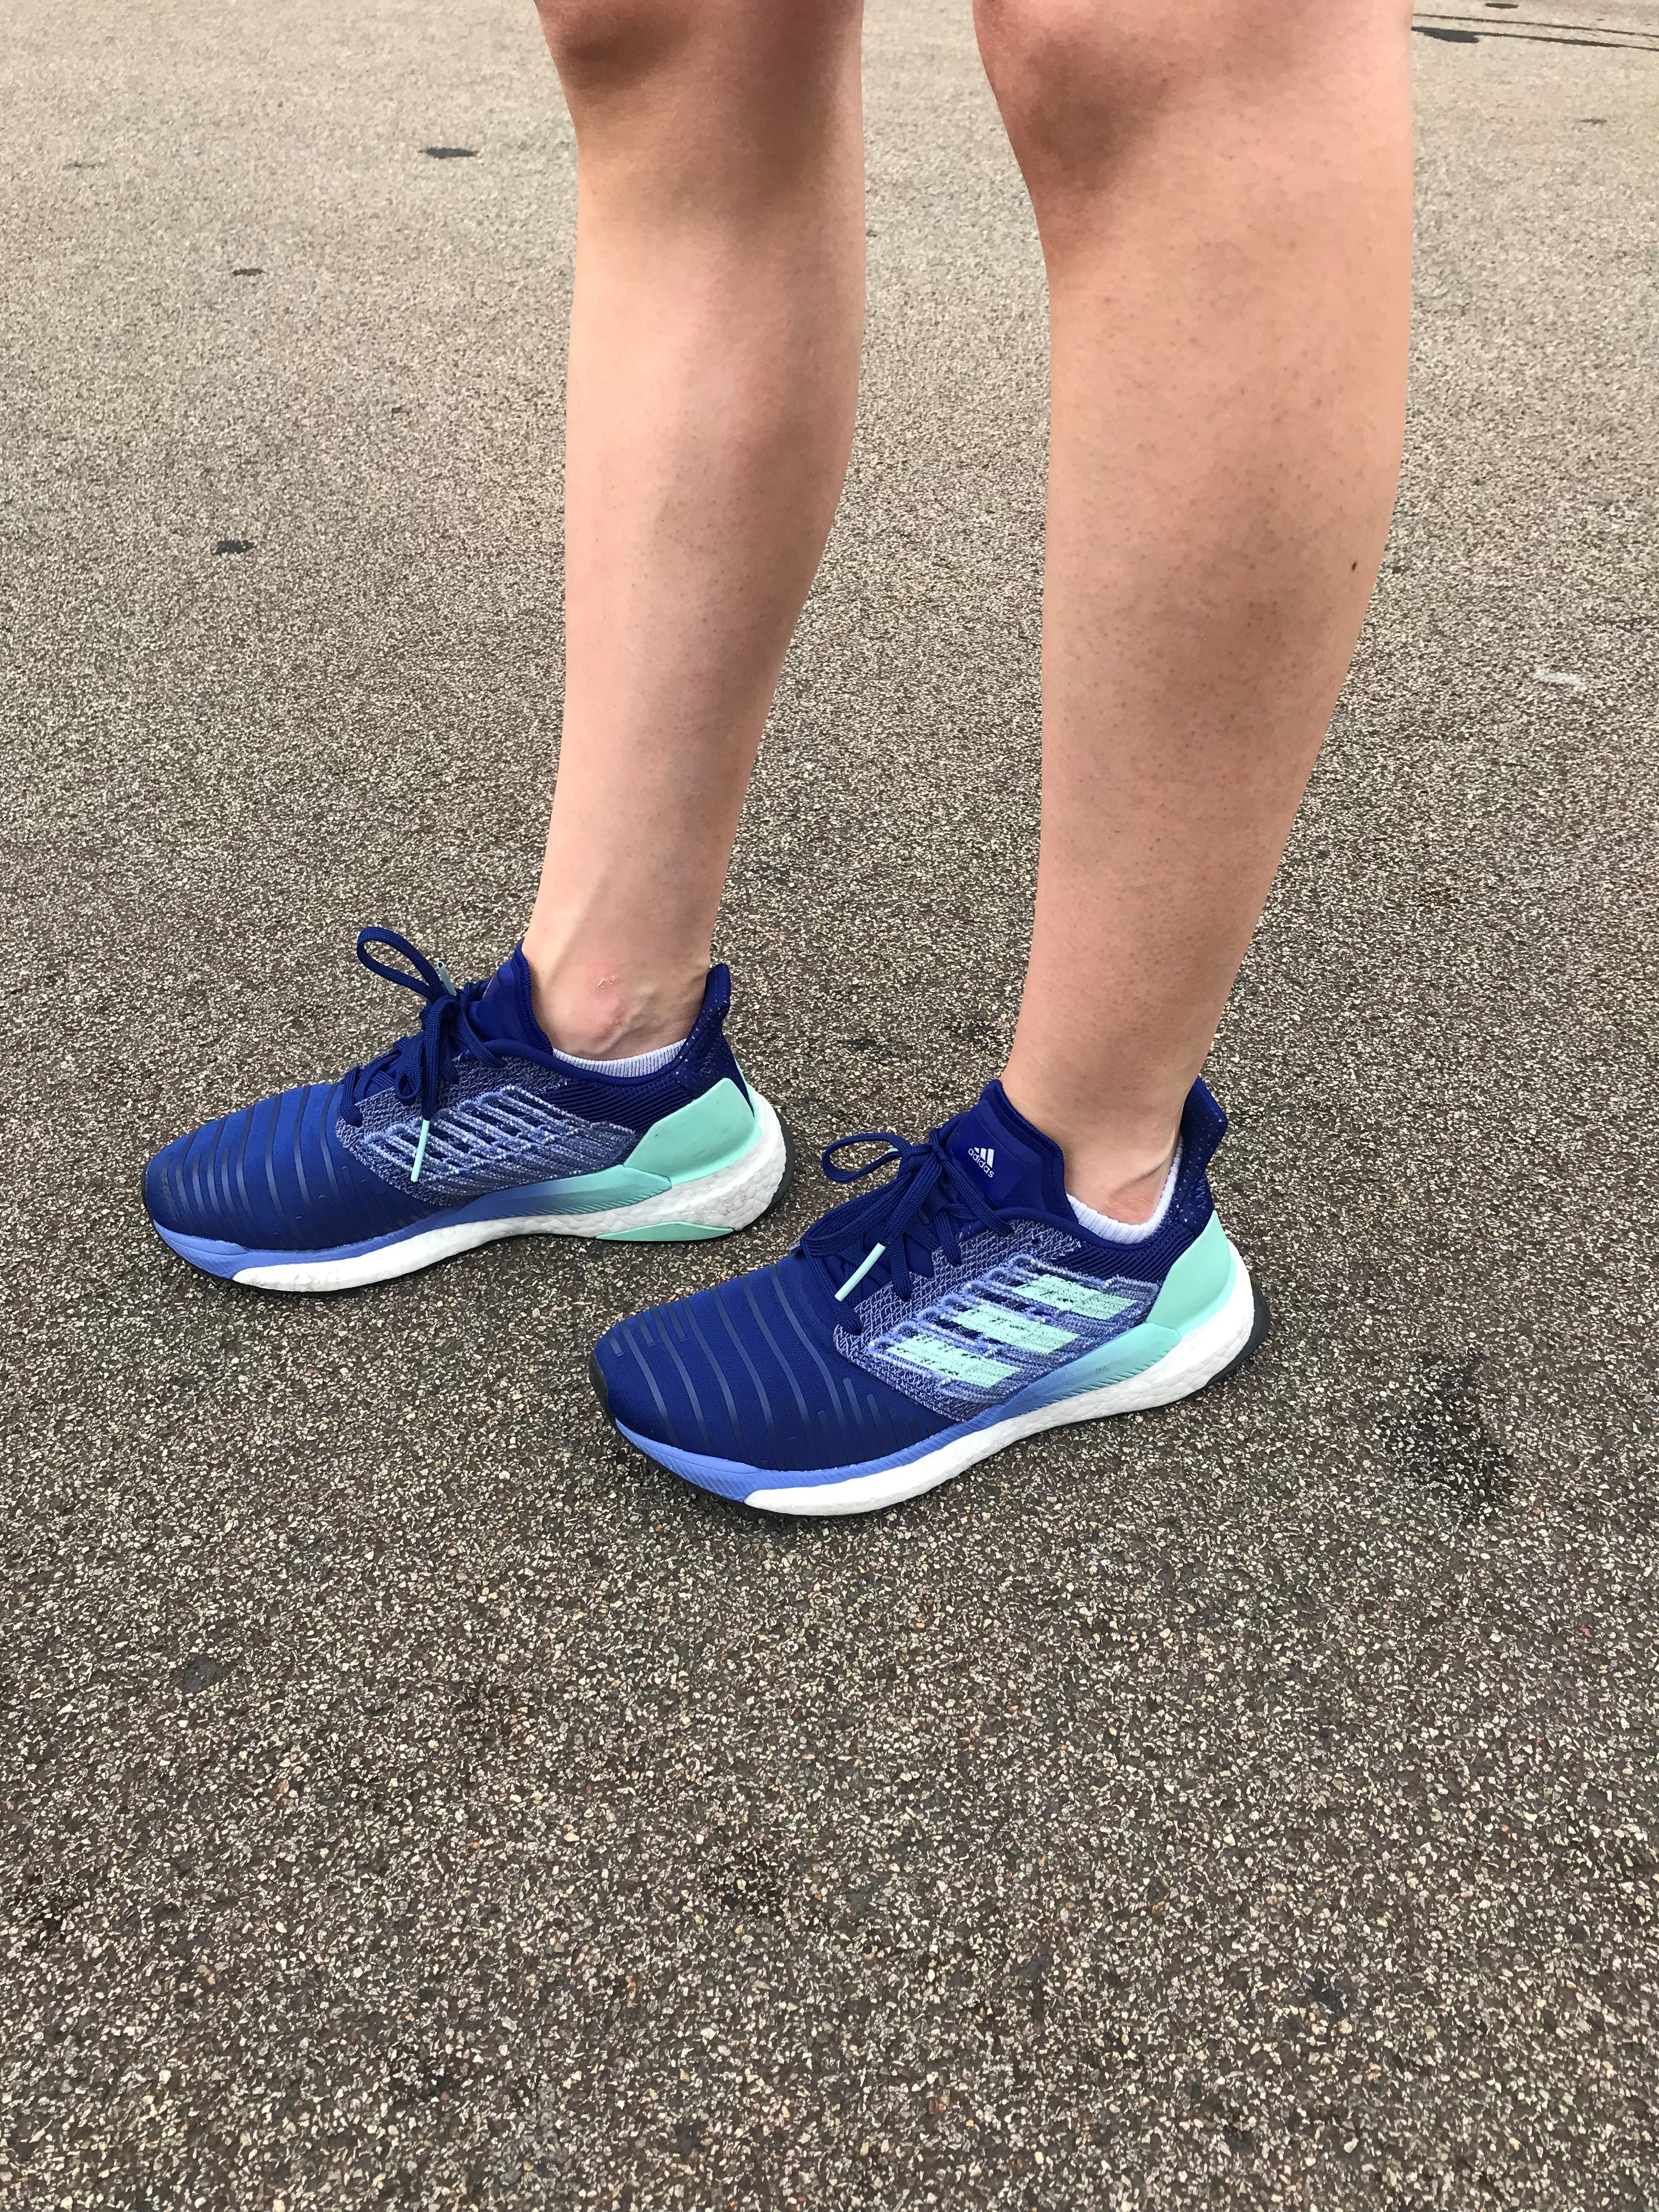 info for 0c9fe 5b0f3 Tried and tested: Adidas Solar Boost trainers - Lifestyle ...